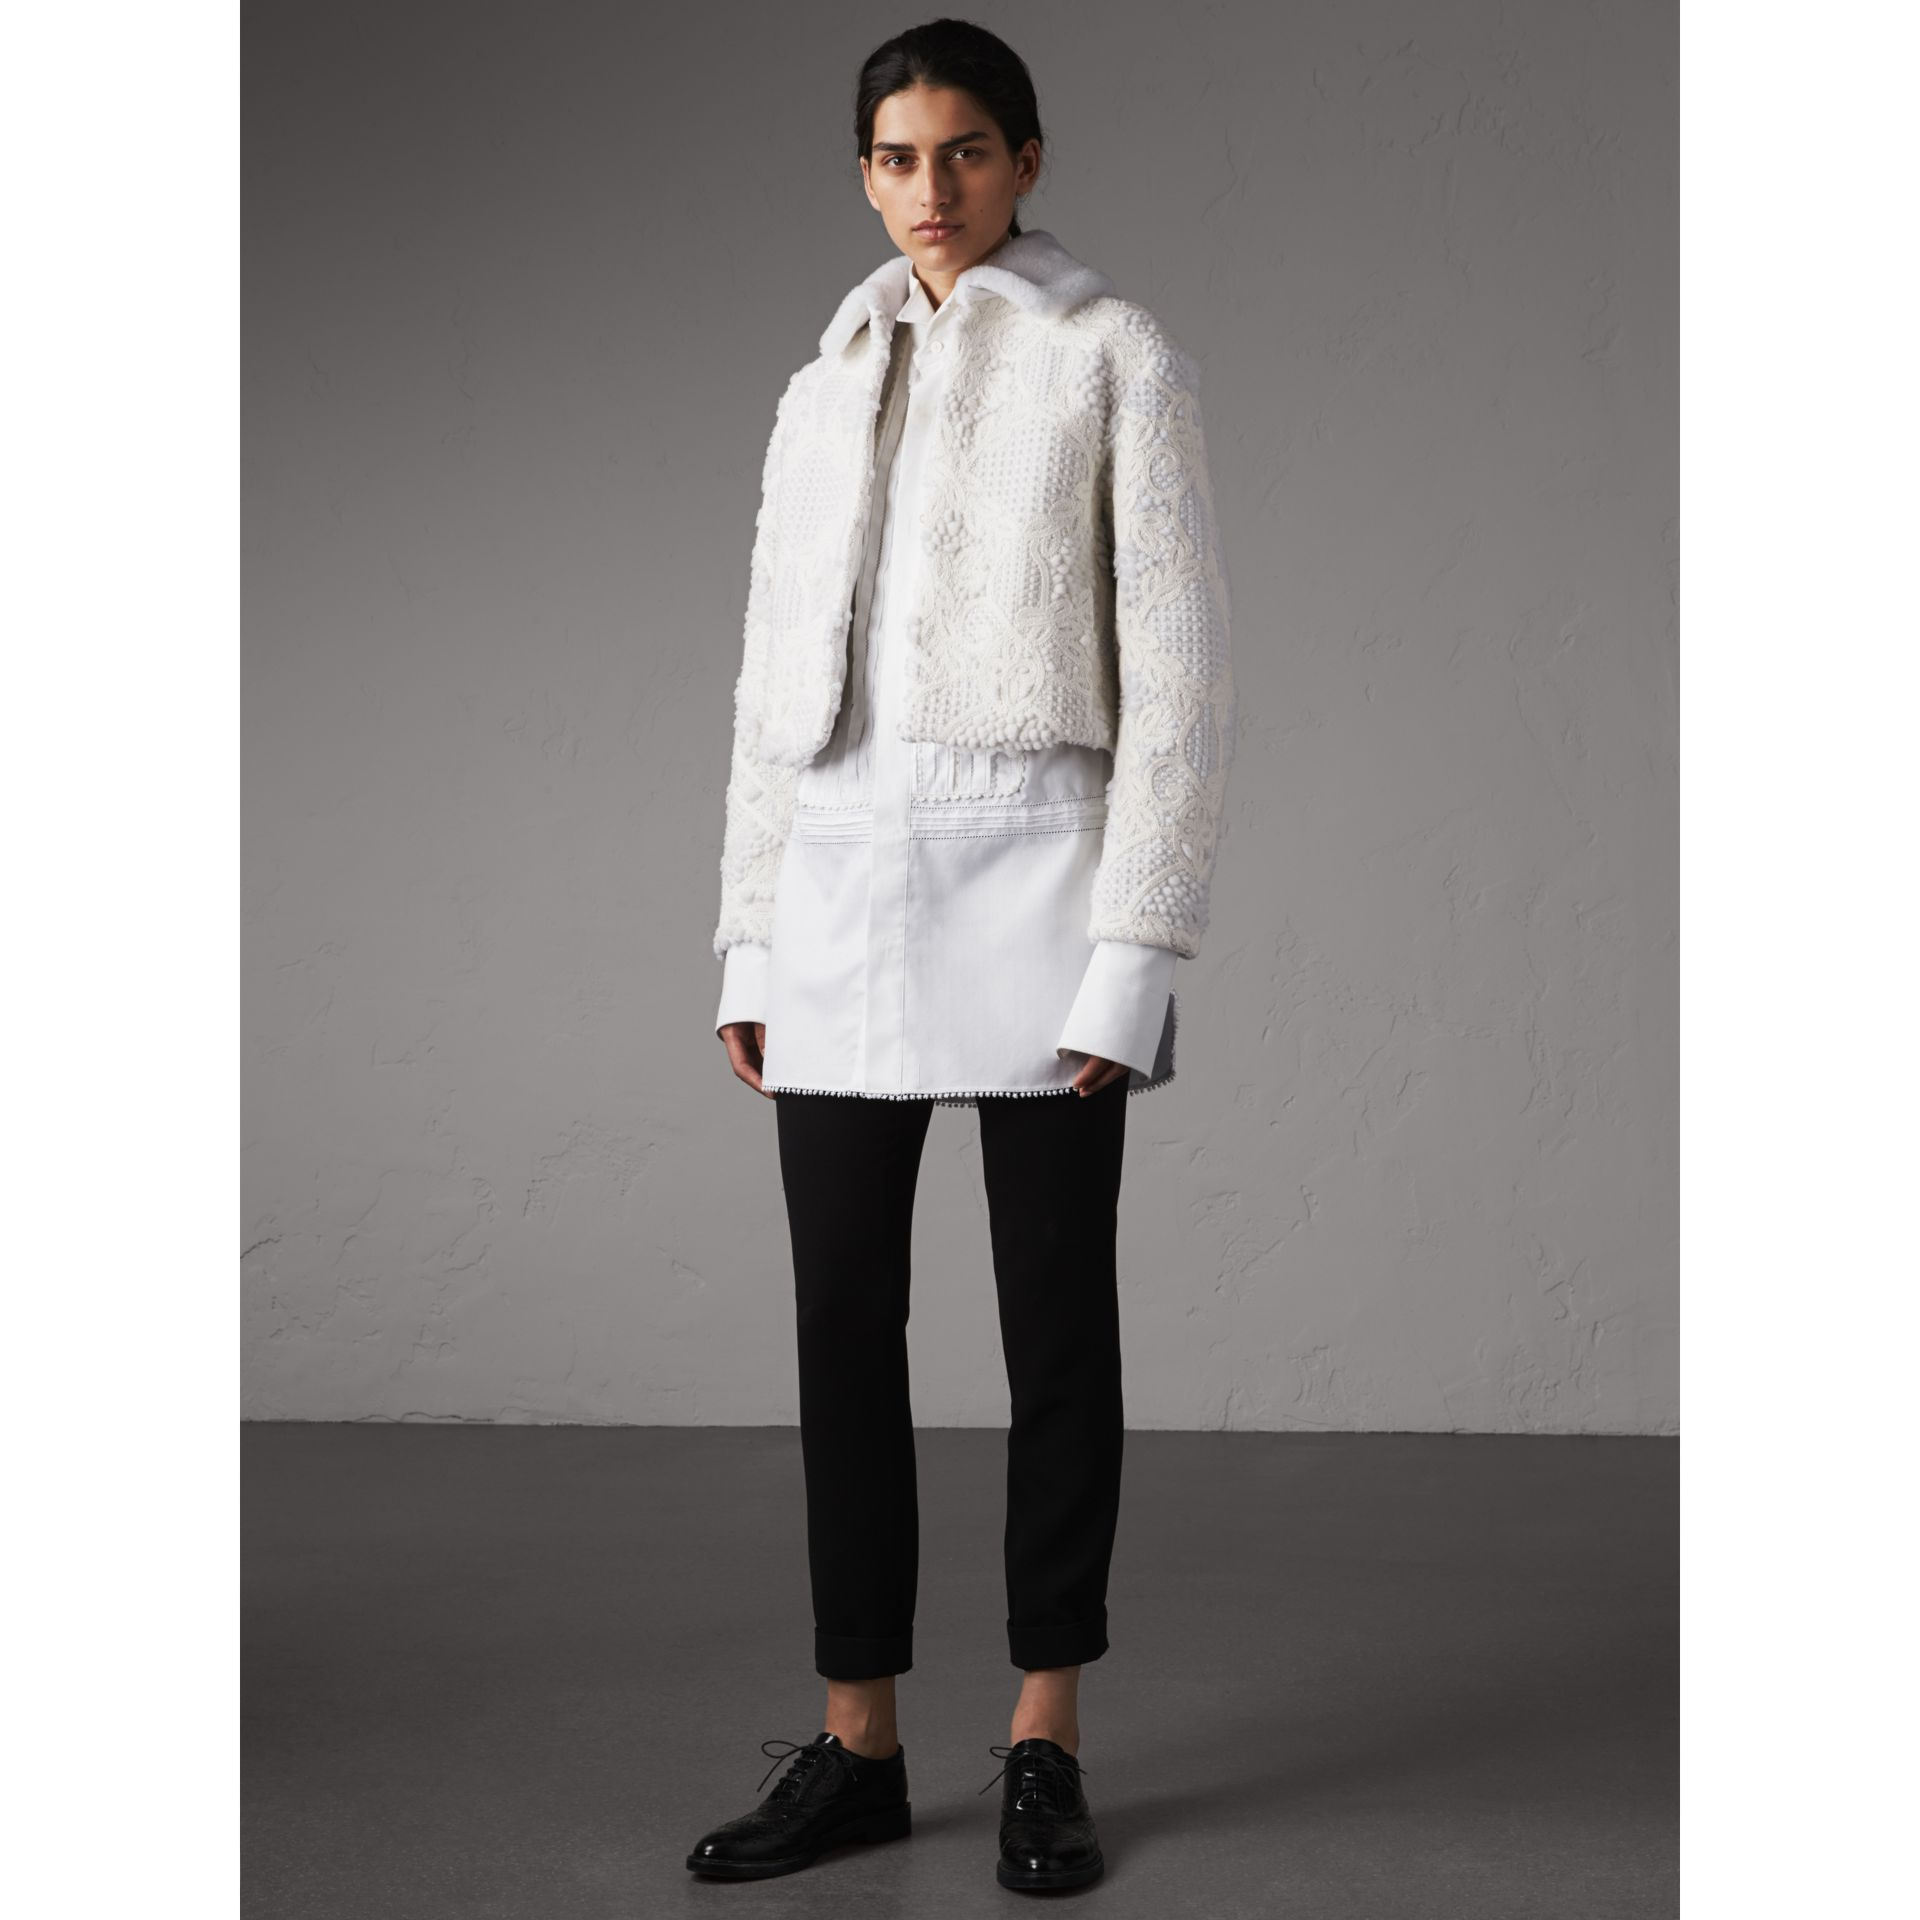 Macramé Lace-embellished Shearling Jacket in White - Women | Burberry Singapore - gallery image 5